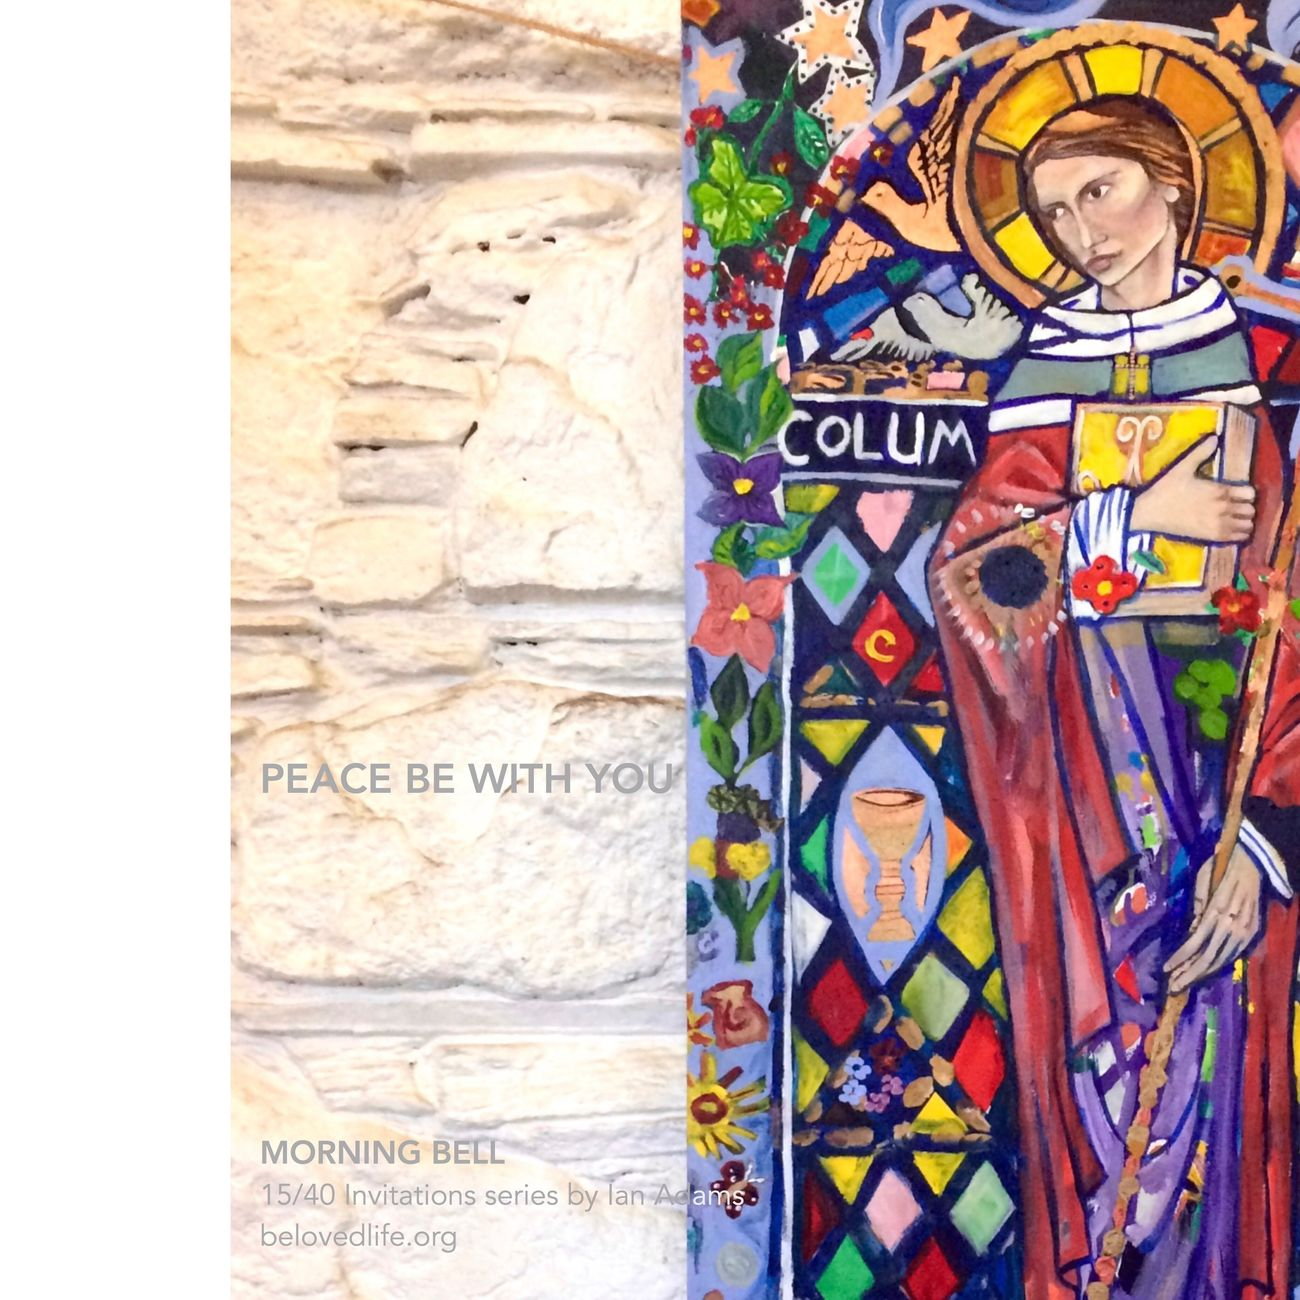 15/40 in #40Invitations series for the #Easter season Stillness Prayer Contemplation Life Iona Iona Community St Columba